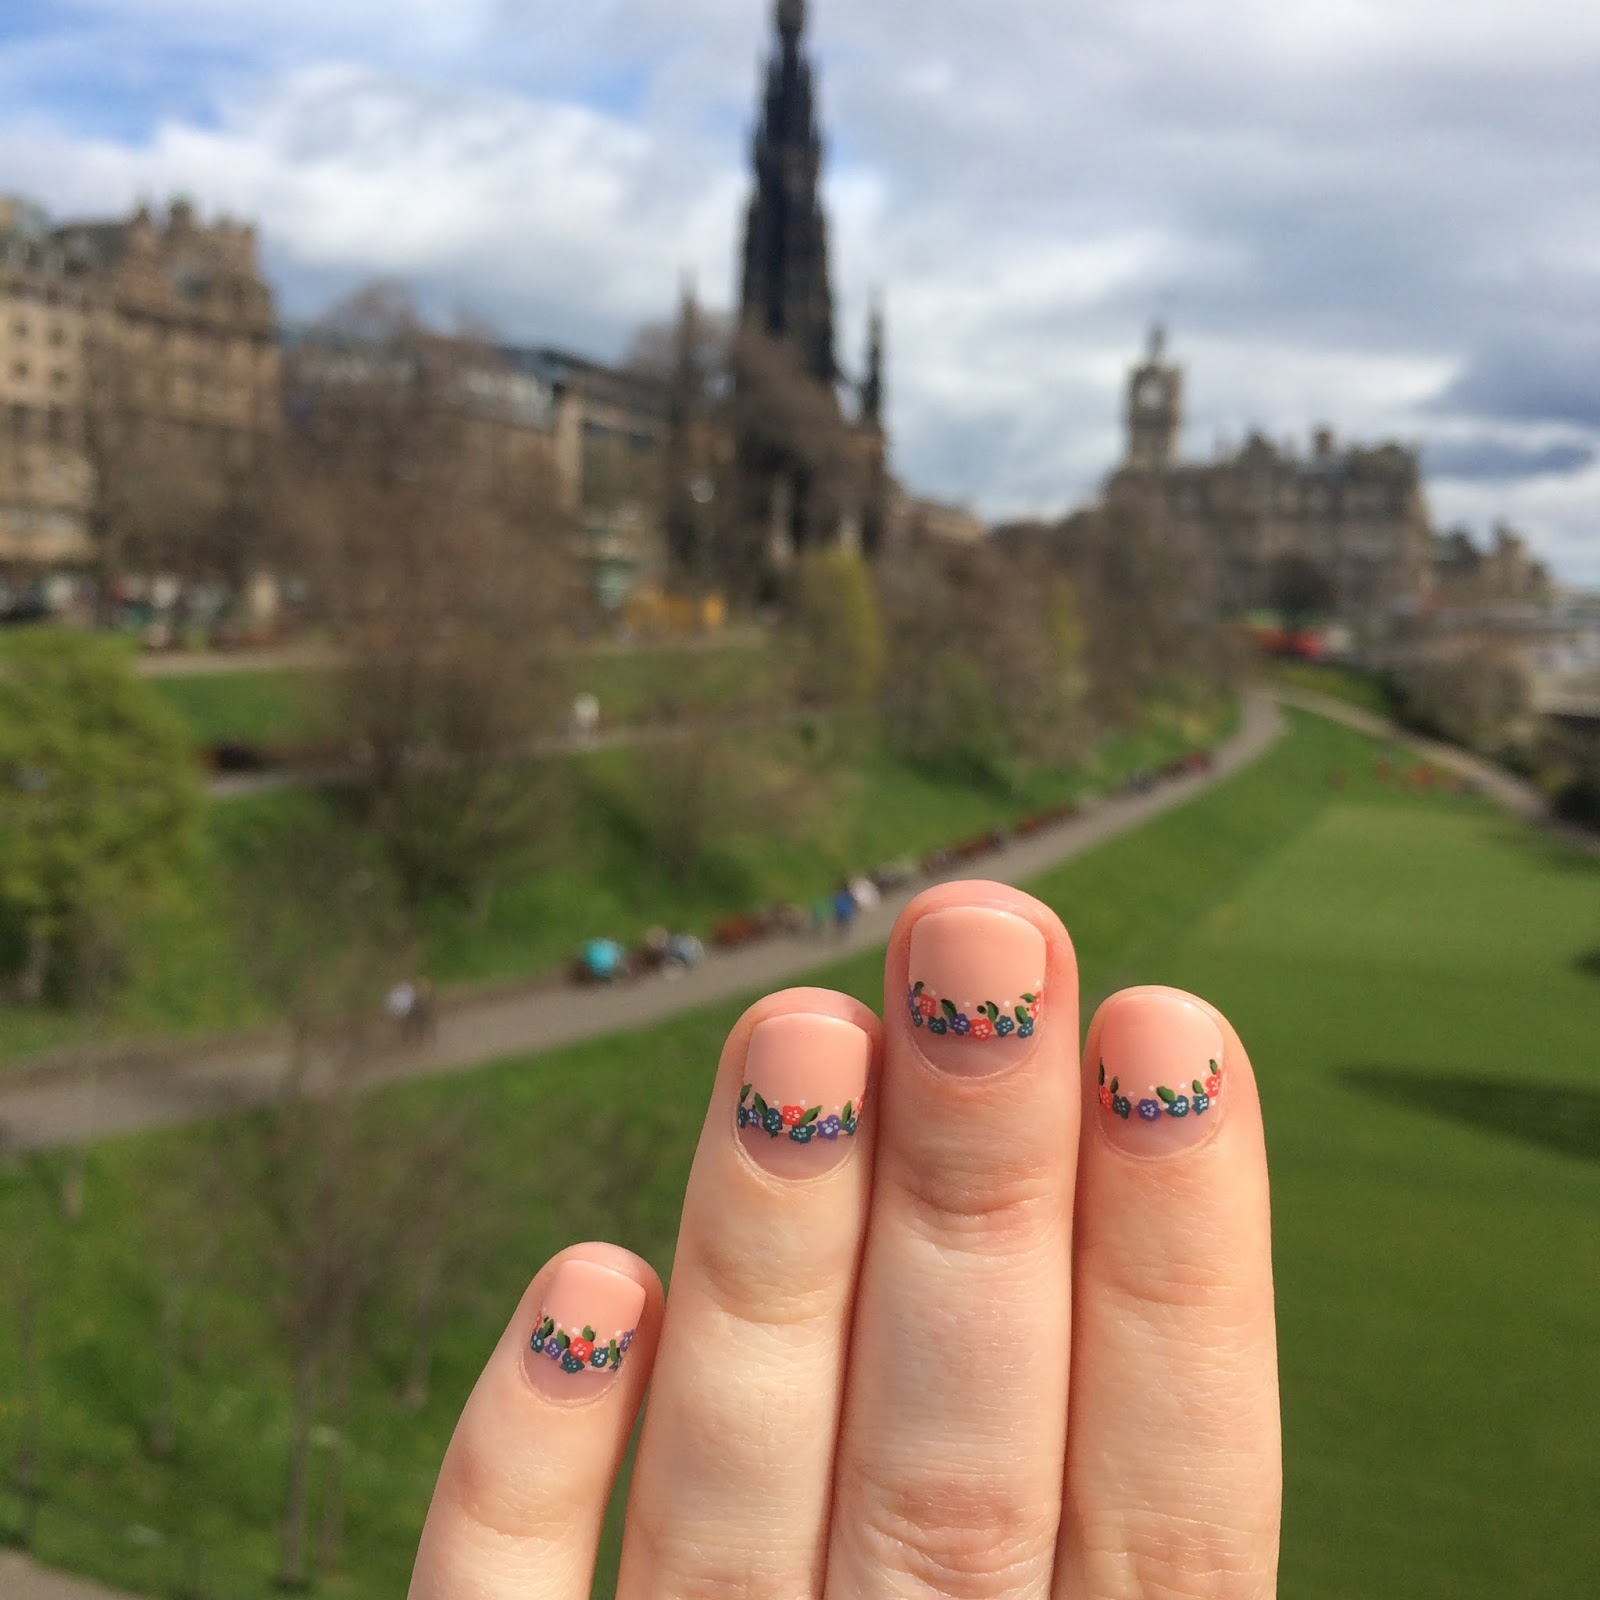 We then headed into the Scottish National Gallery, it was really interesting to see actual paintings by Van Gogh and Monet, but I must admit that a lot of ...